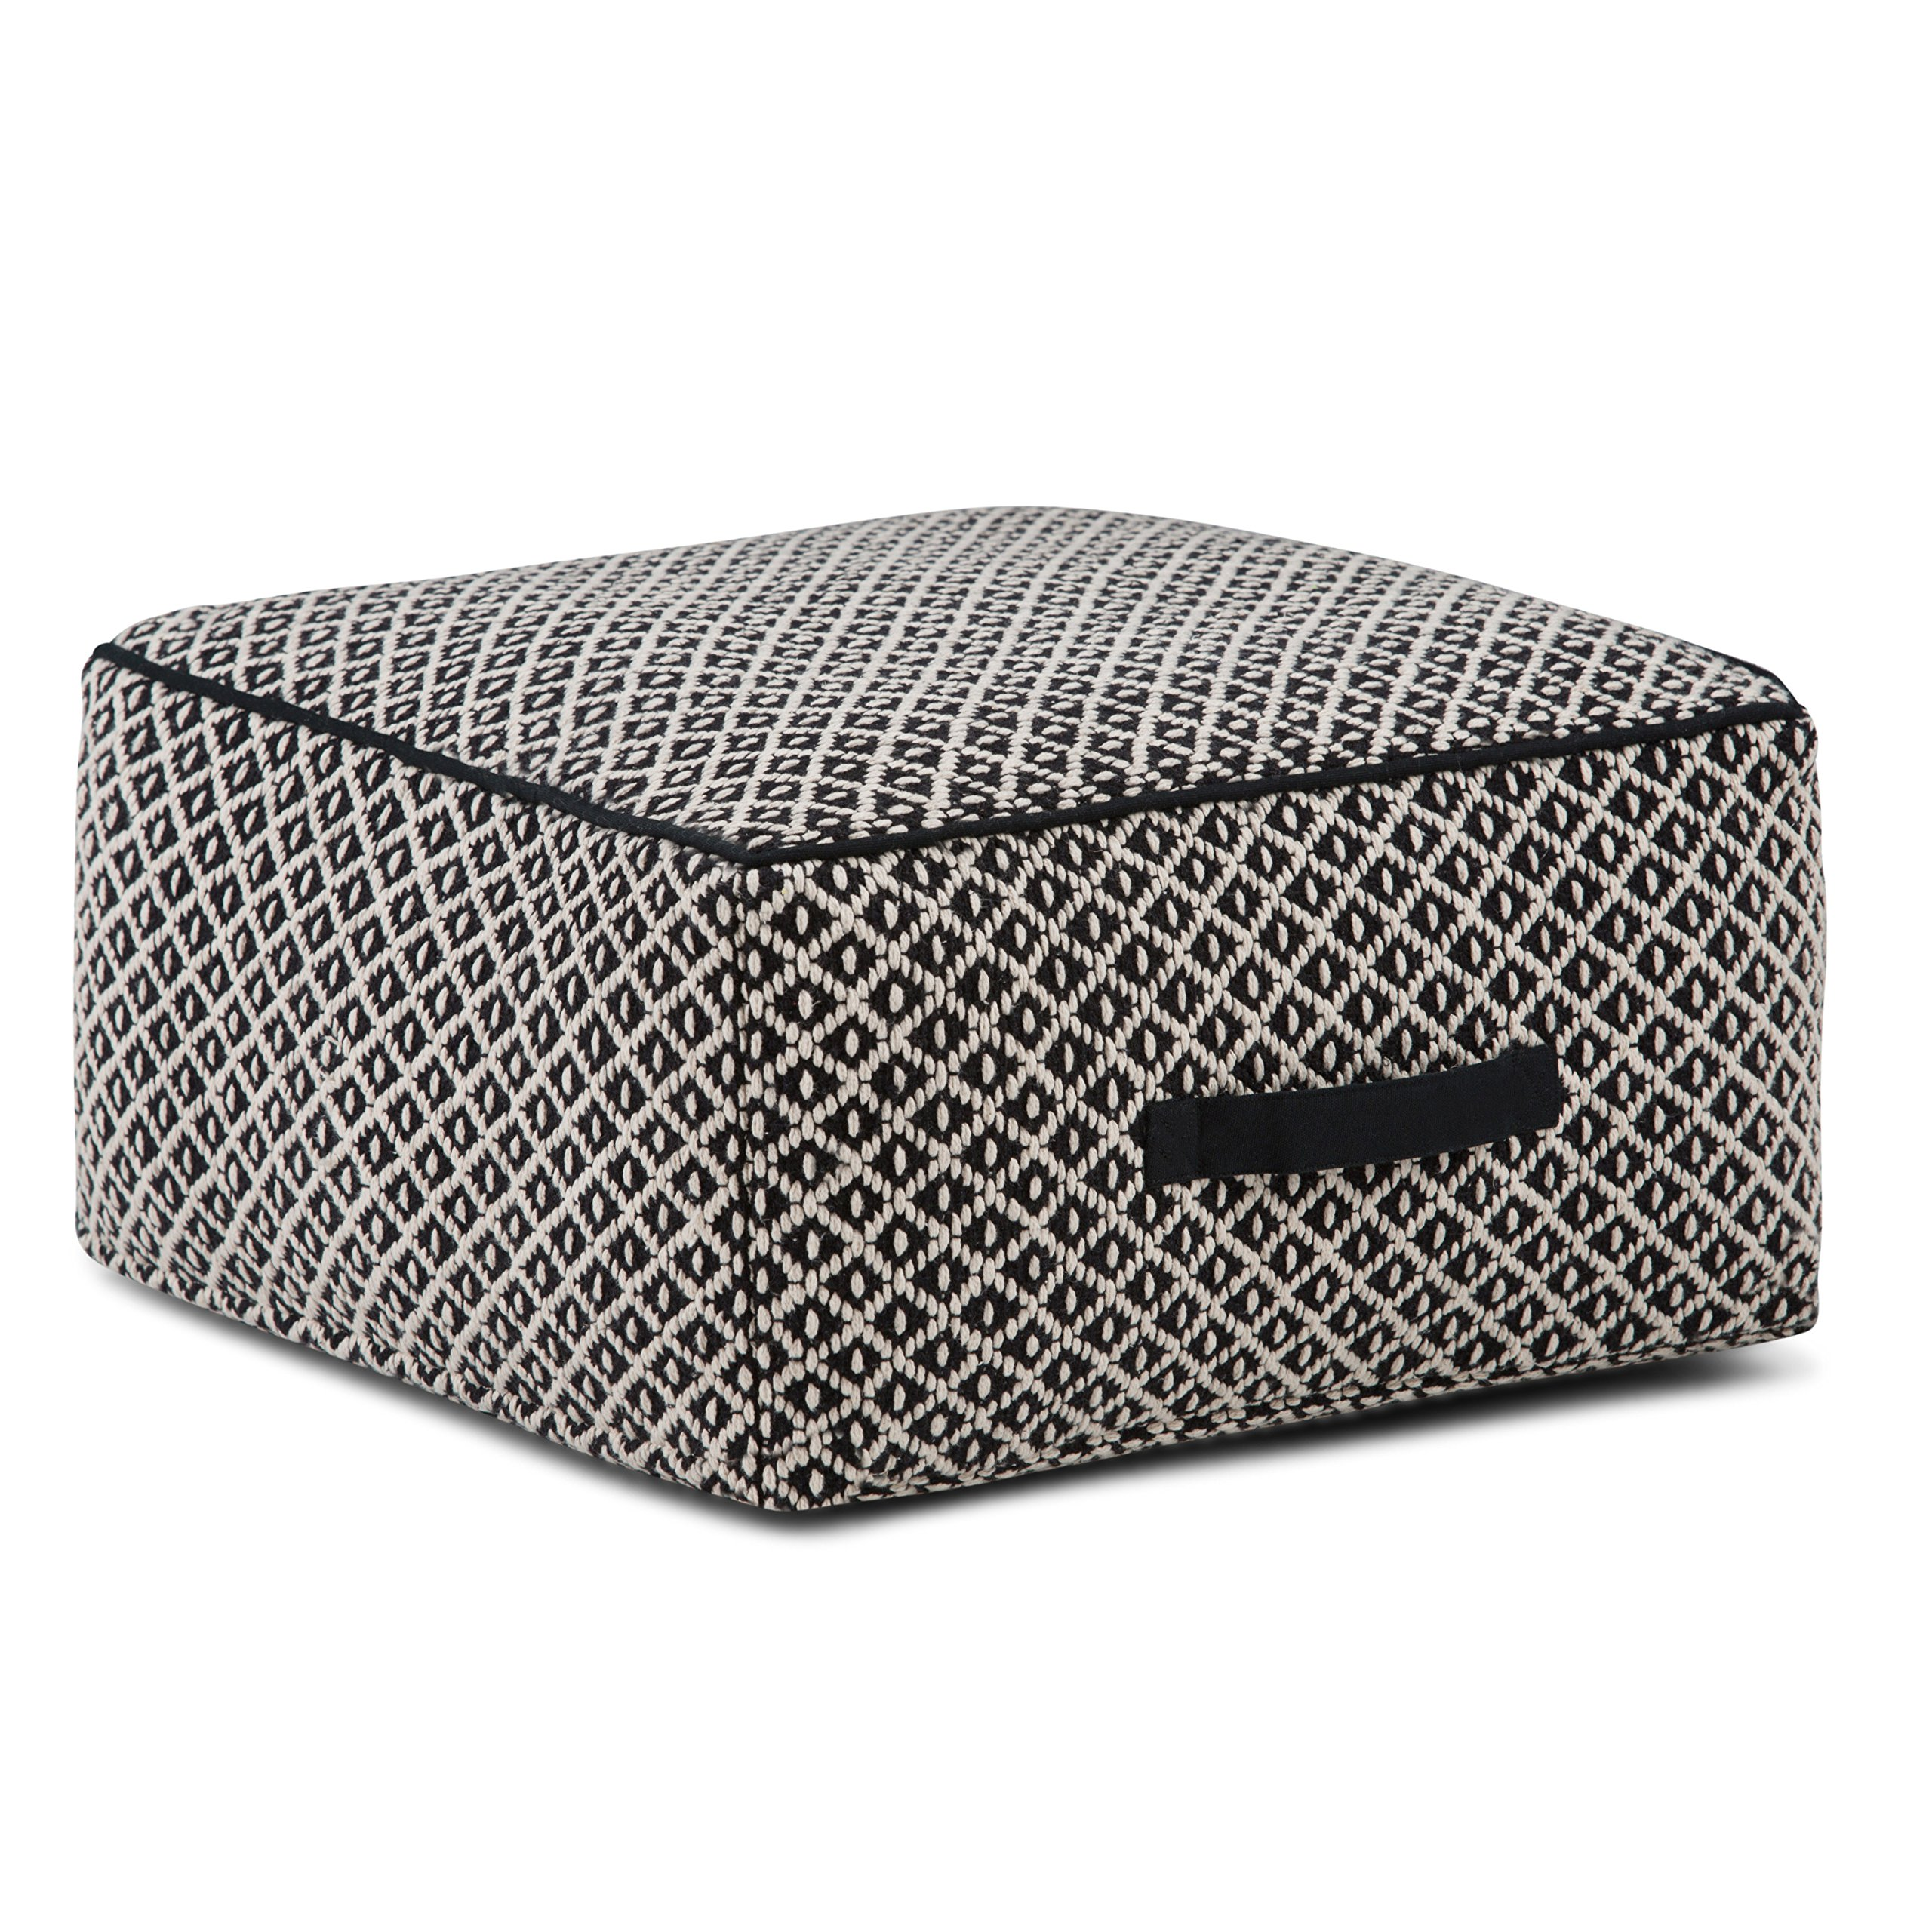 Simpli Home Olsen Square Pouf, Patterned Black and Ivory